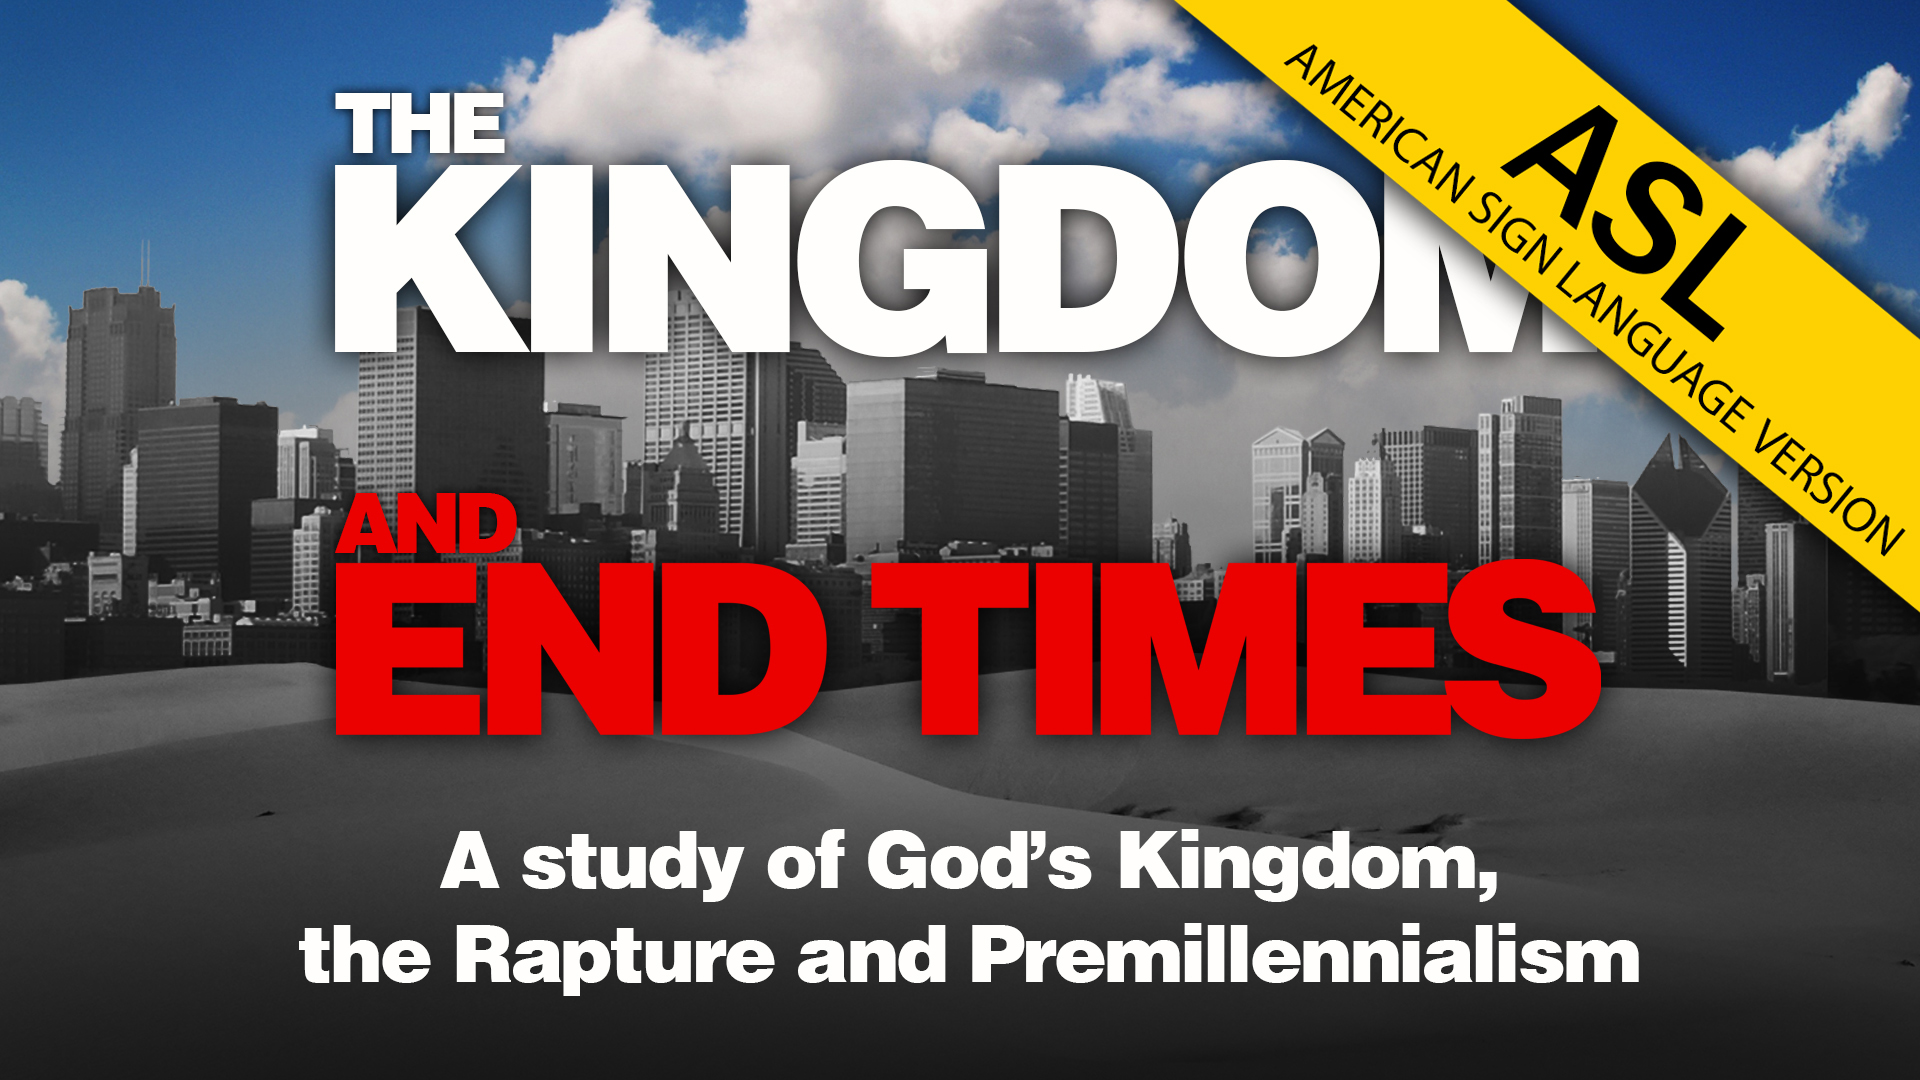 The Kingdom and End Times (ASL)